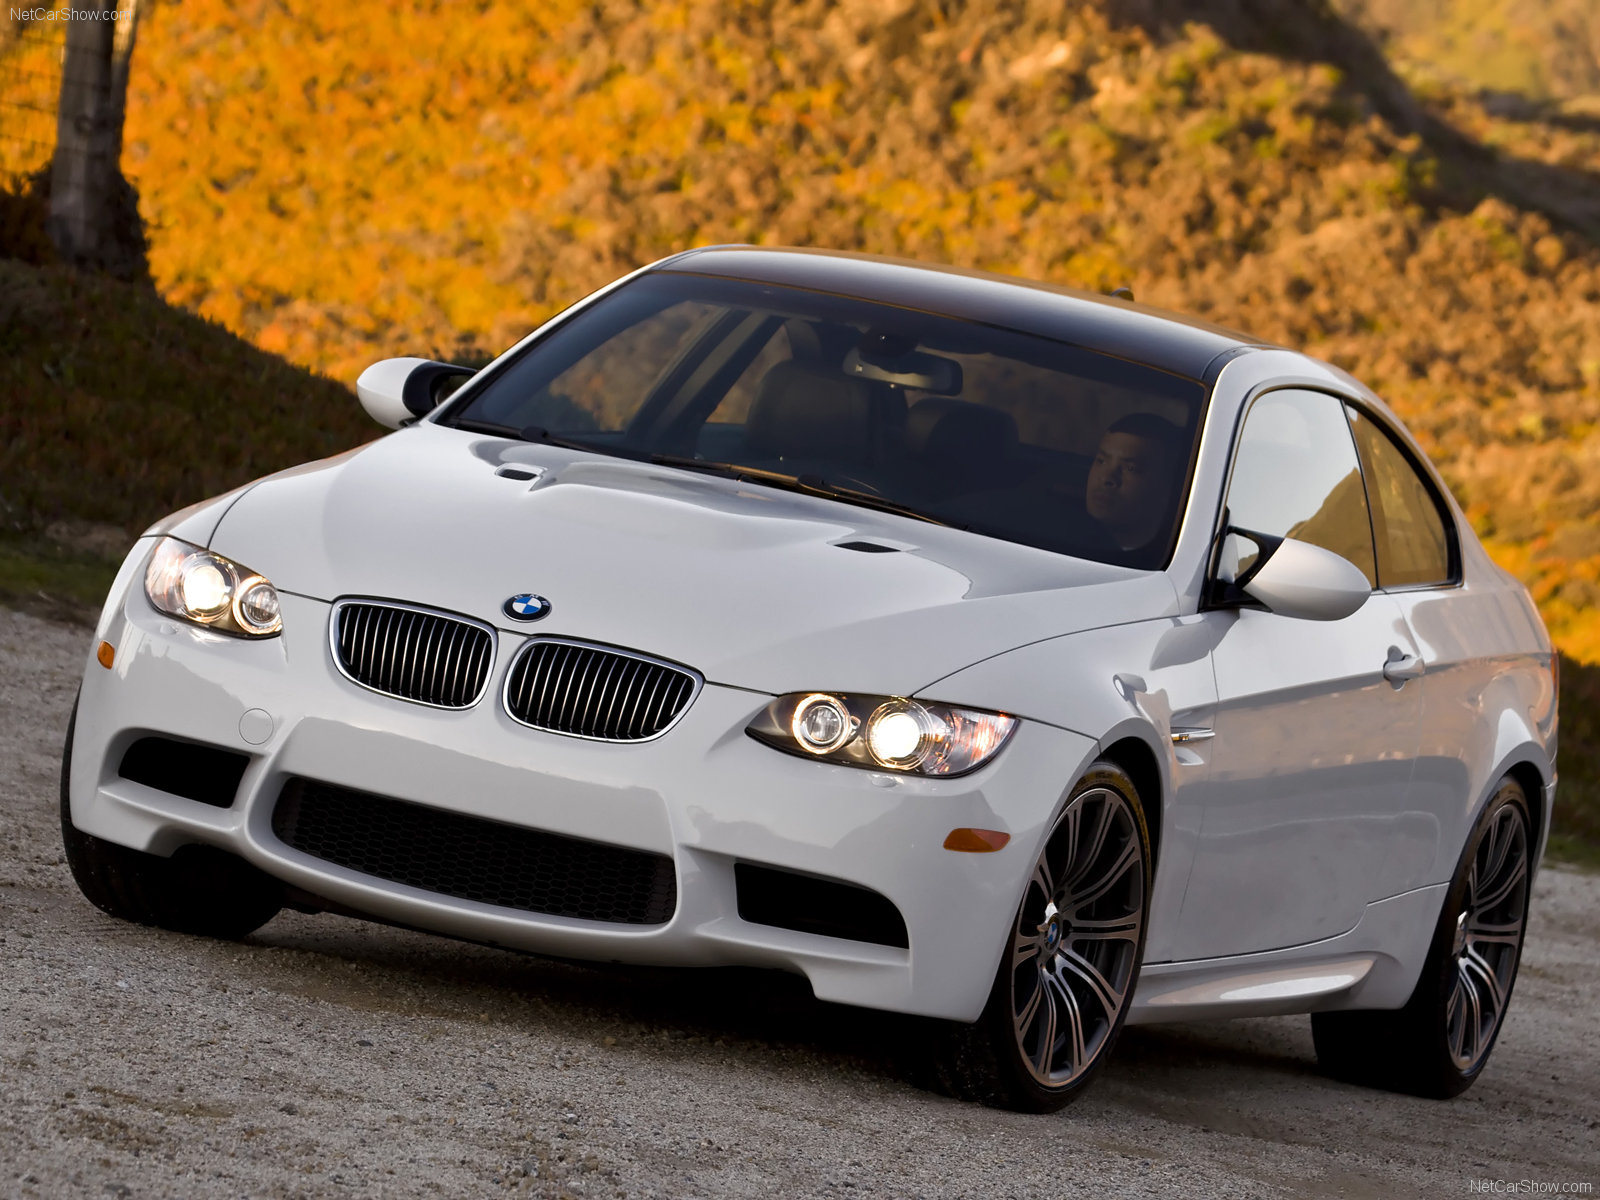 Bmw m3 e92 coupe photos photo gallery page 3 carsbase vanachro Image collections